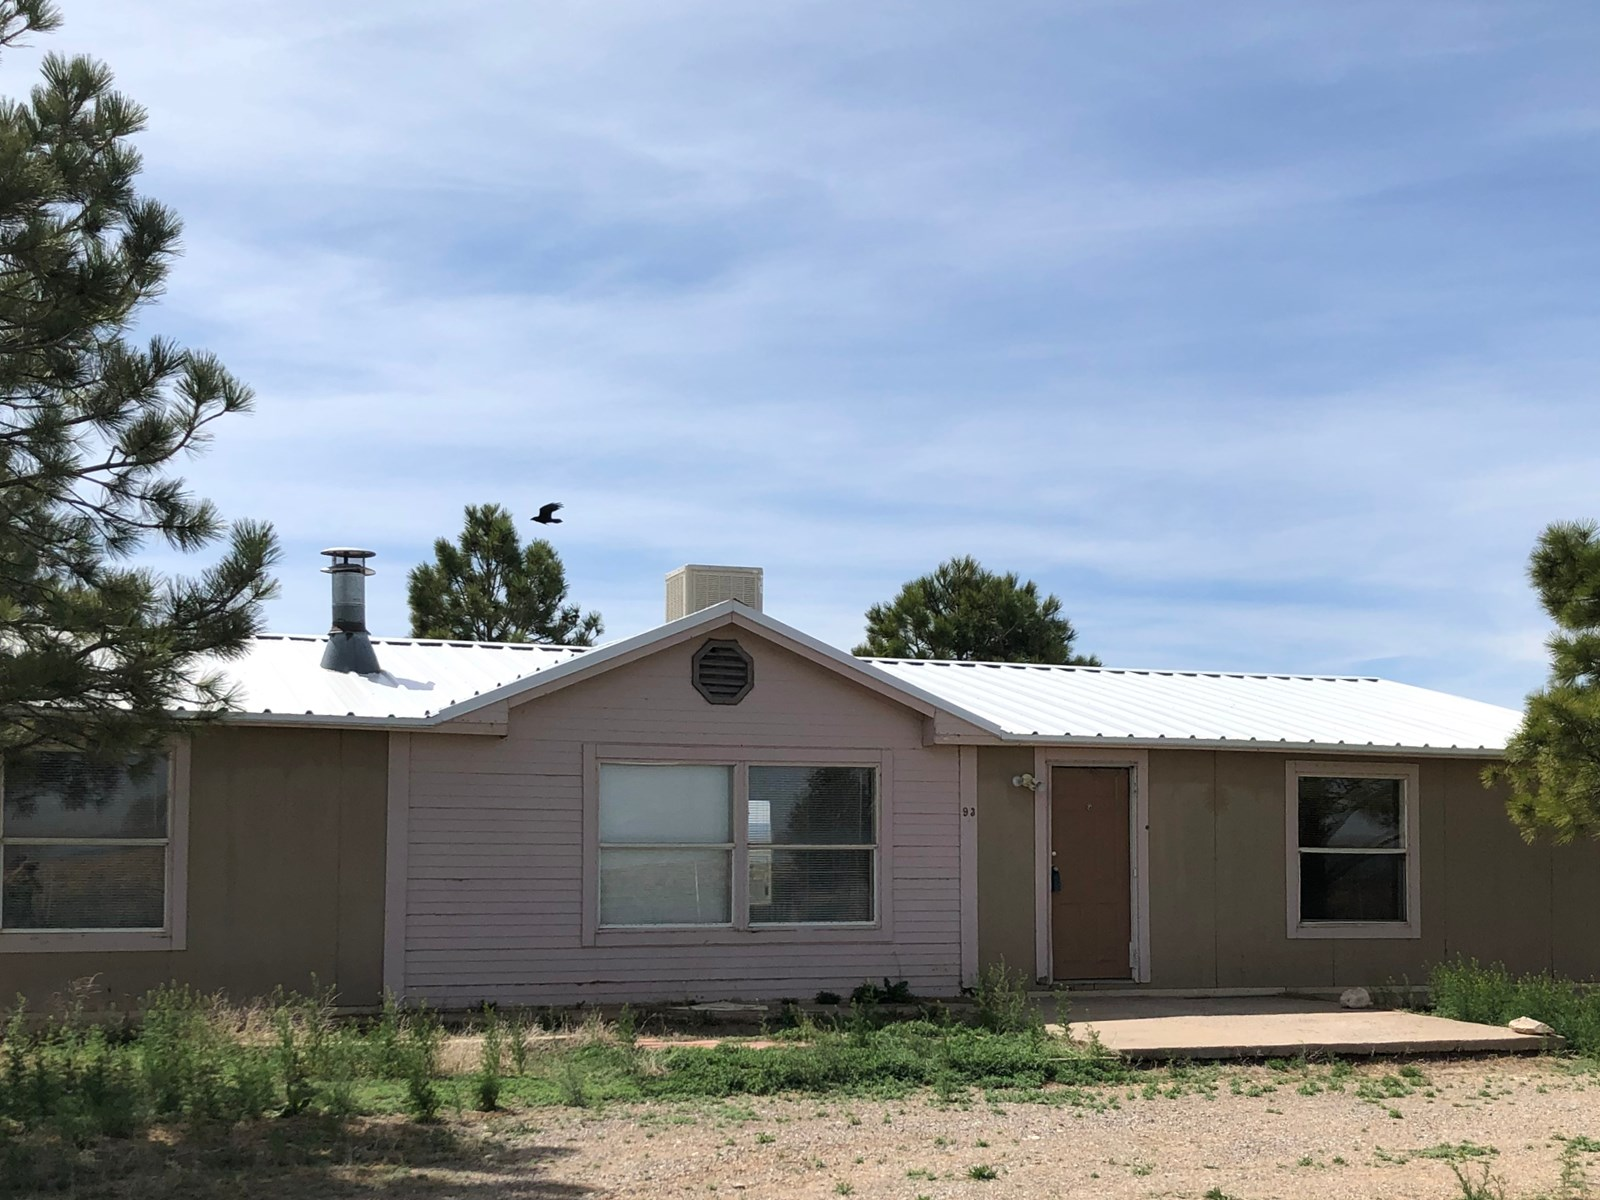 Santa Fe County, NM Manufactured Home on 10 Acres For Sale